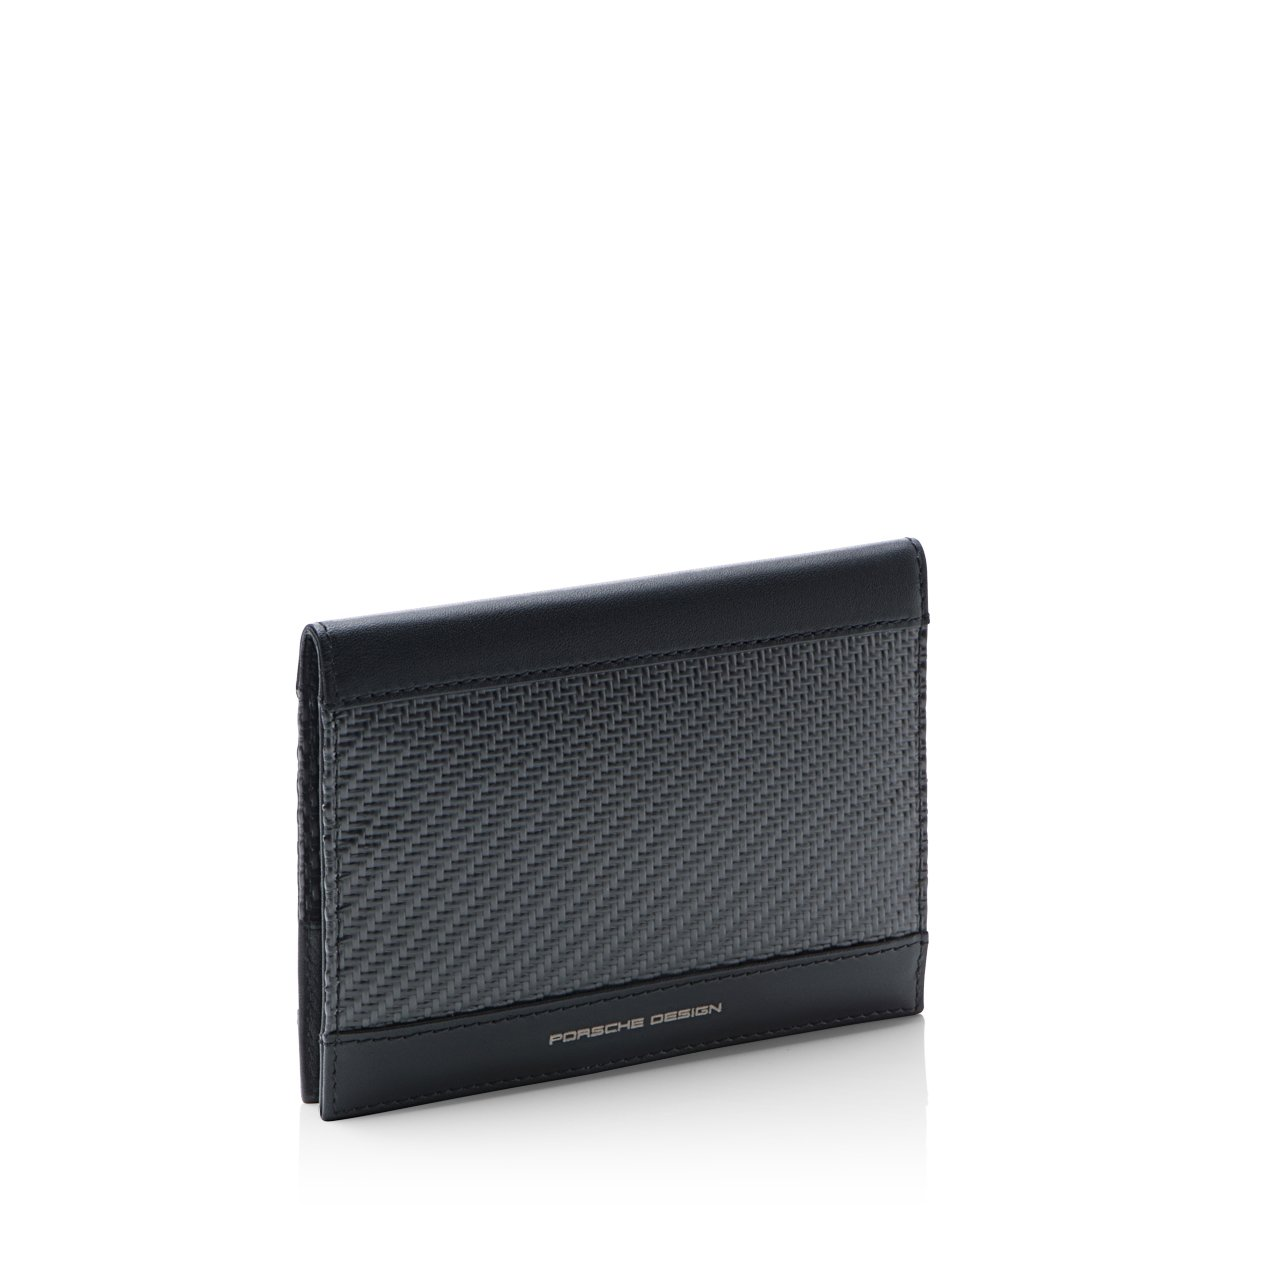 Porsche Design Carbon Passport Holder (Carbon Fibre & Leather)